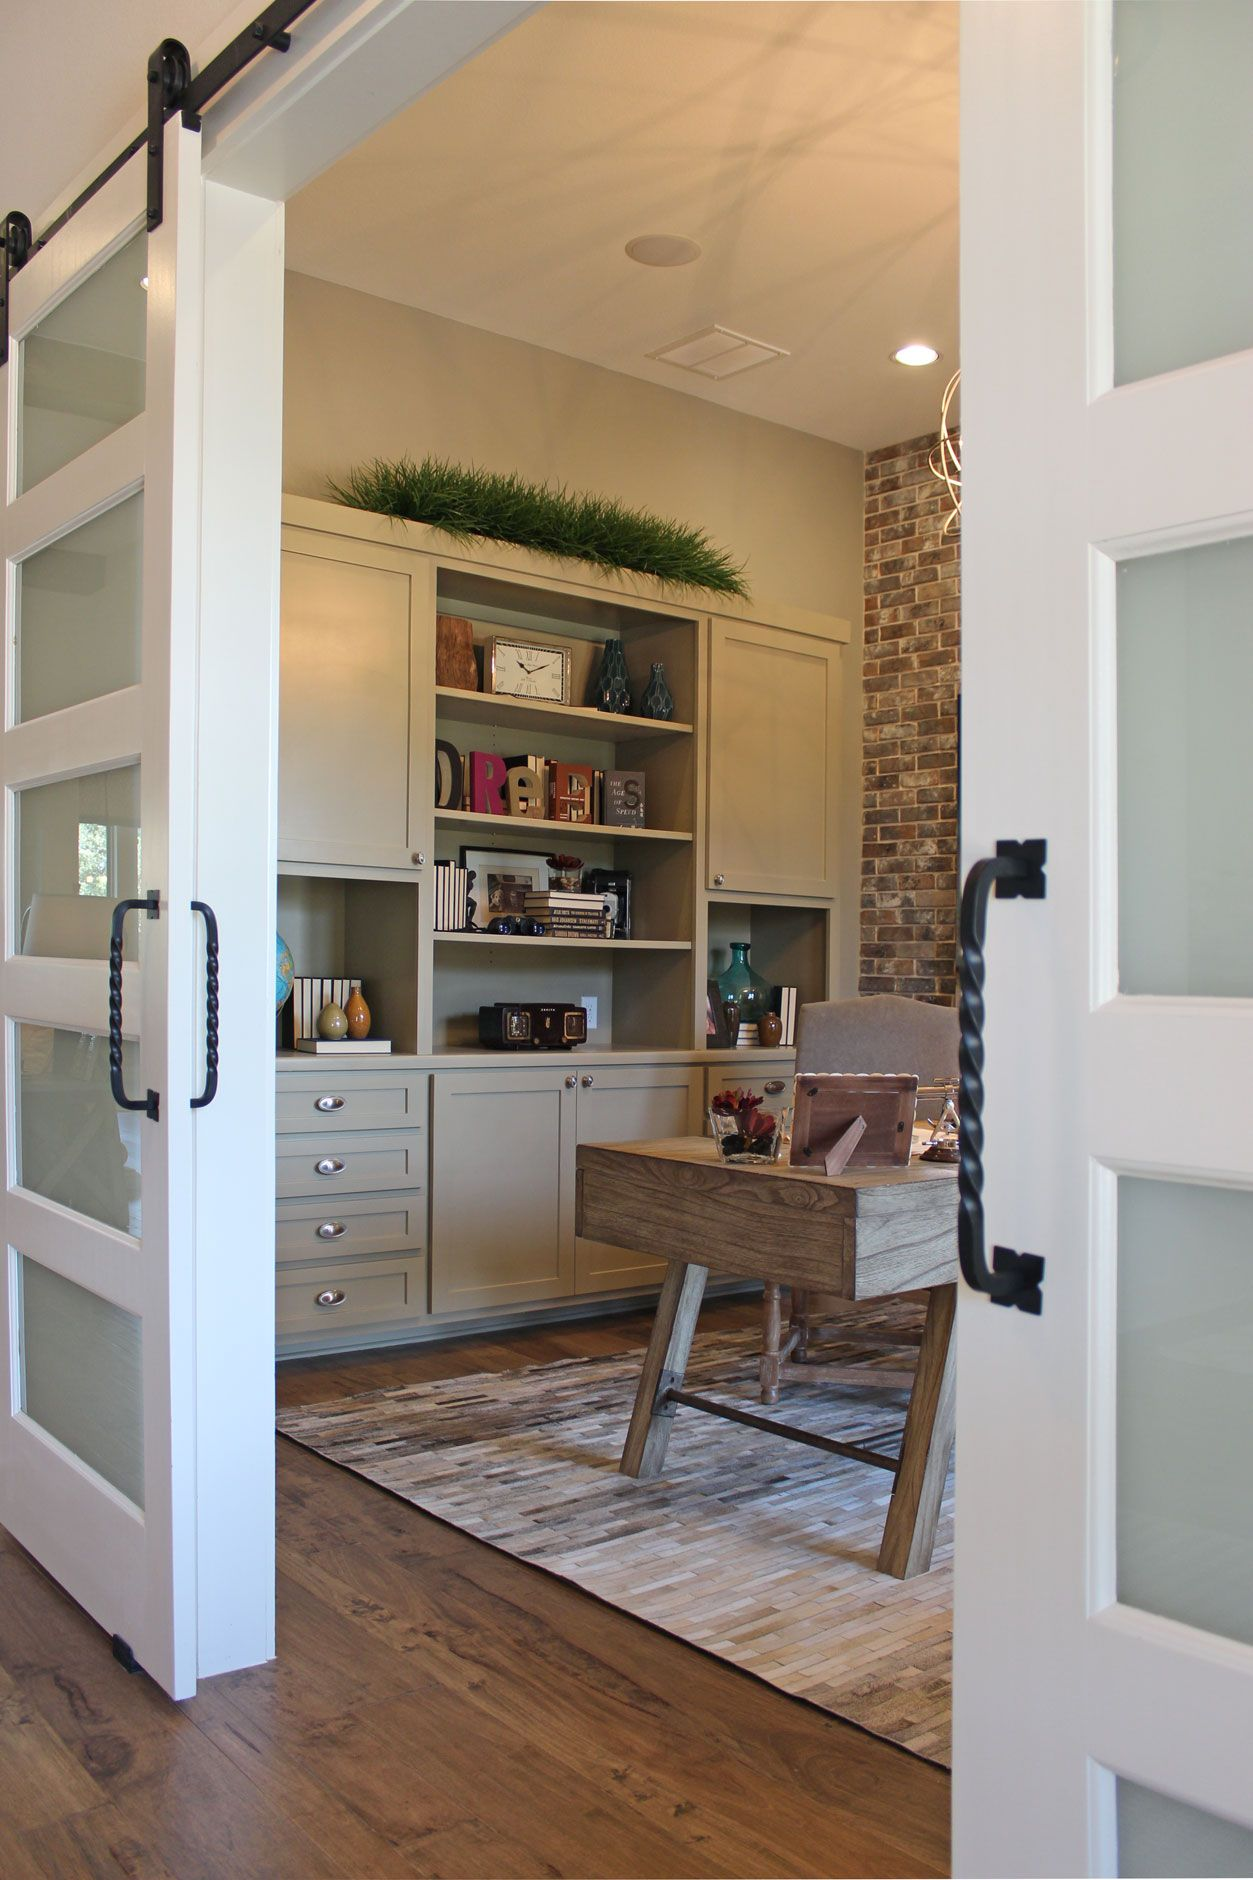 Office With Sliding Barn Doors And Gray Painted Built In Wall Cabinets With Open Shelves Open Cabinets Grey Kitchen Cabinets Grey Office